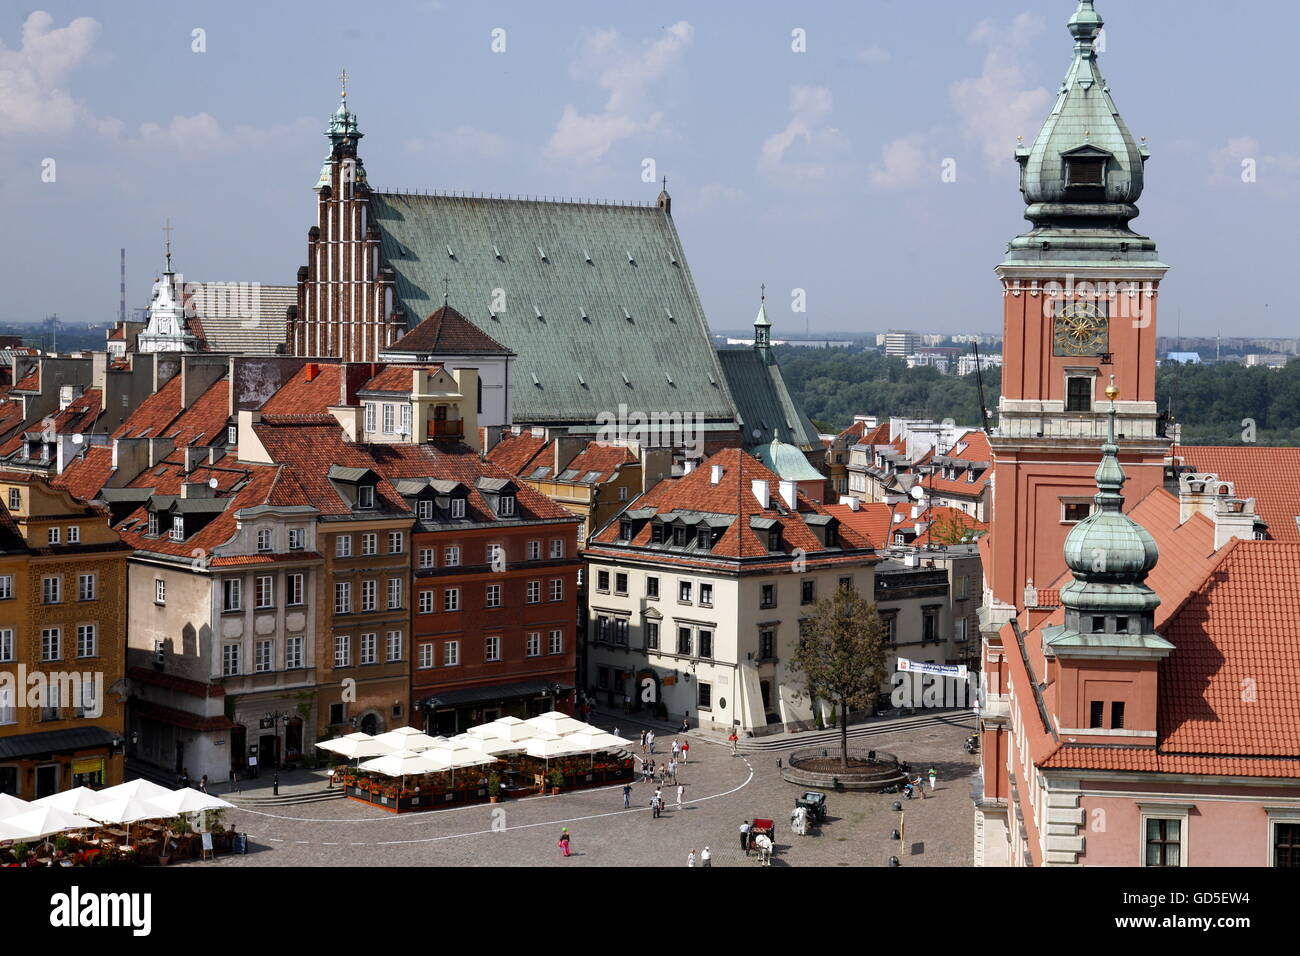 the Zamkowy Square in the City of Warsaw in Poland, East Europe. - Stock Image